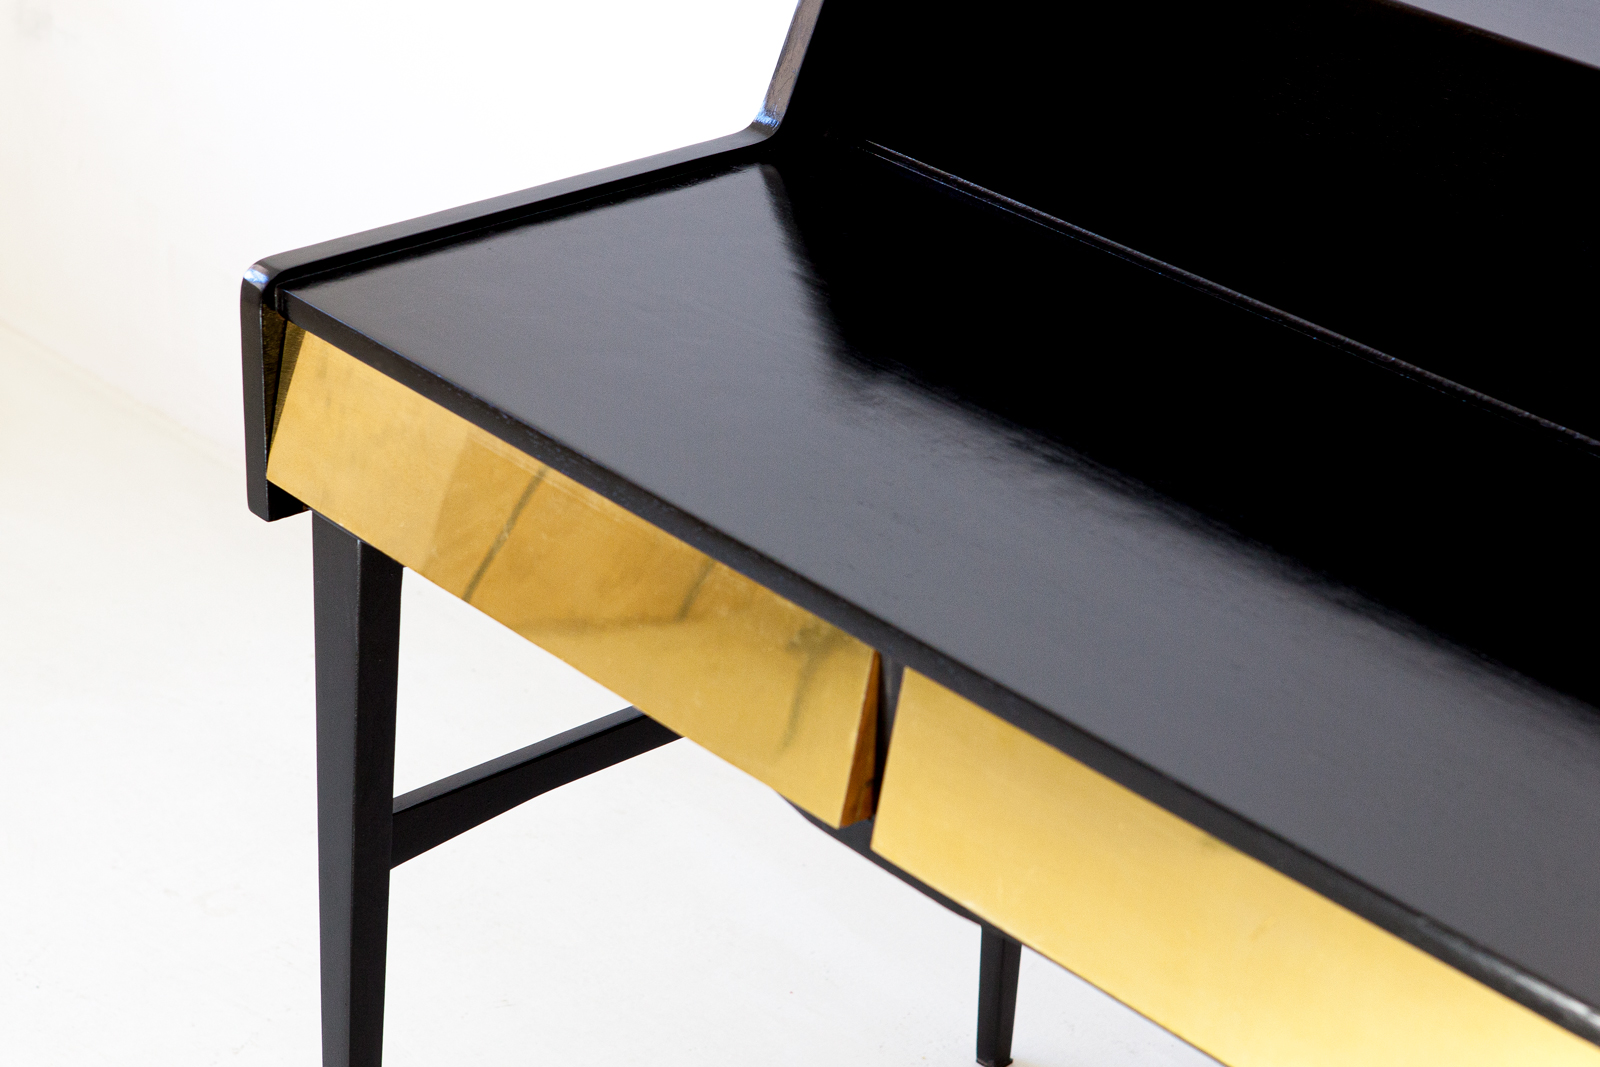 1950s-black-polished-wood-and-brass-desk-5-dt34